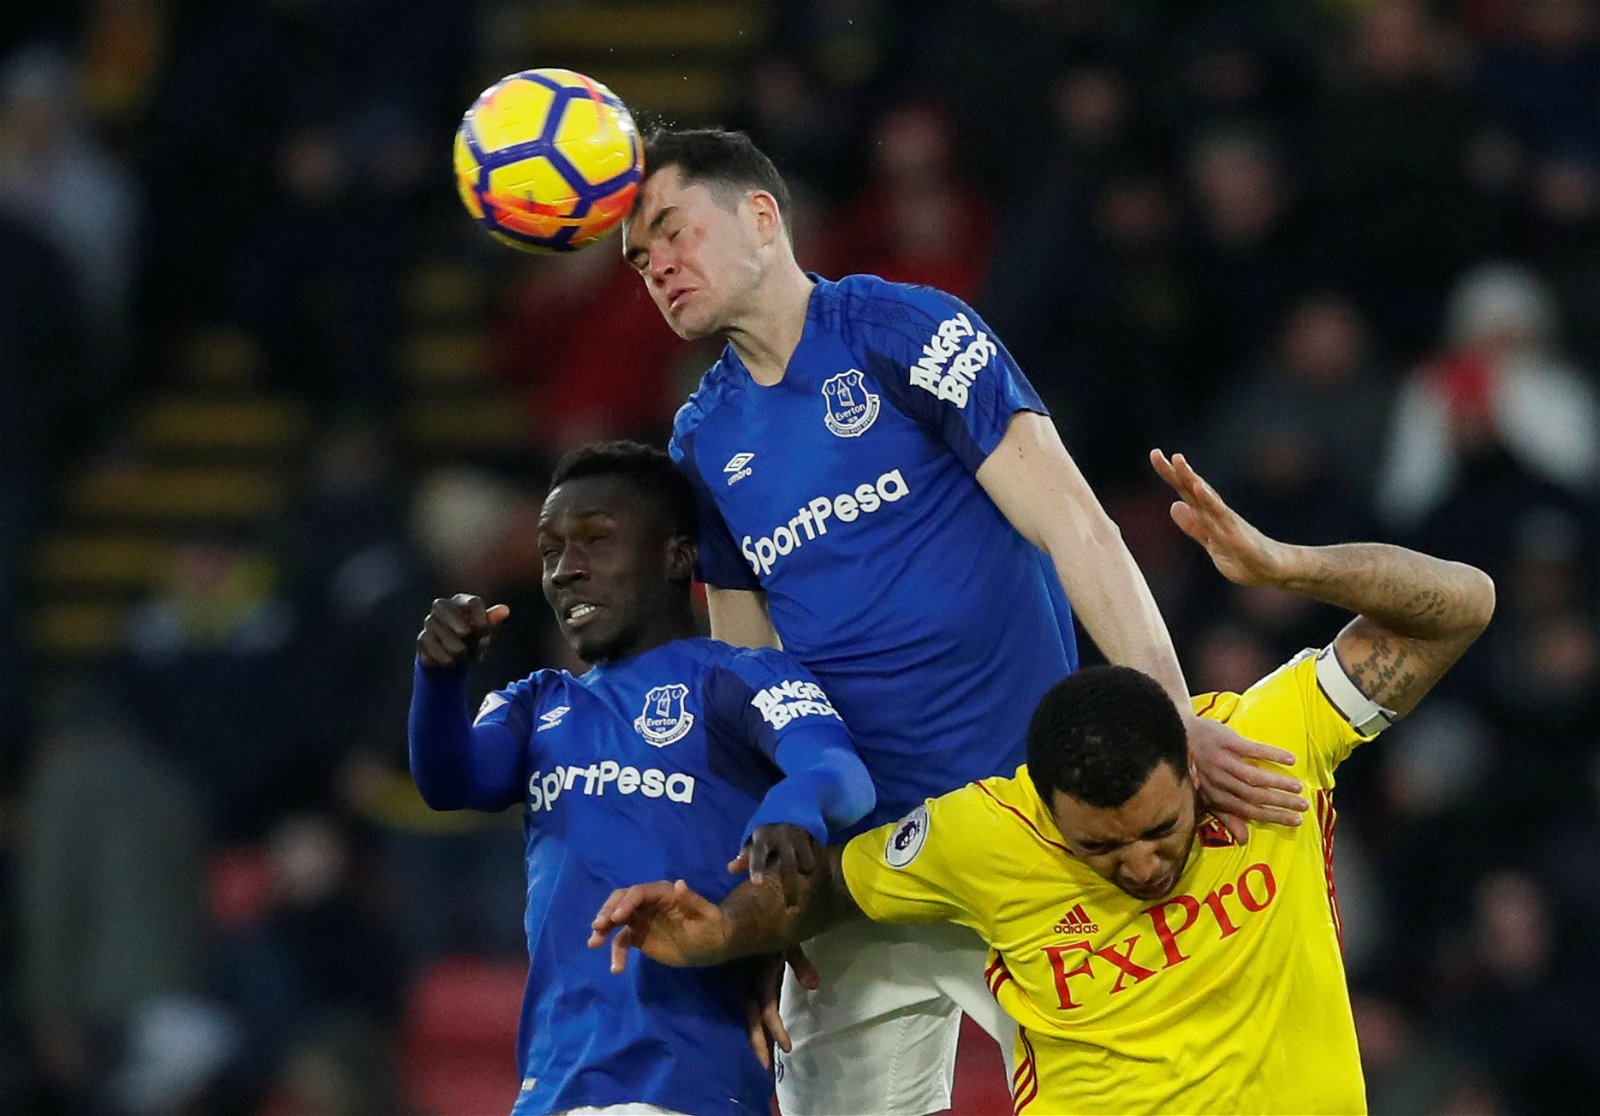 Michael Keane challenges for the ball in the air